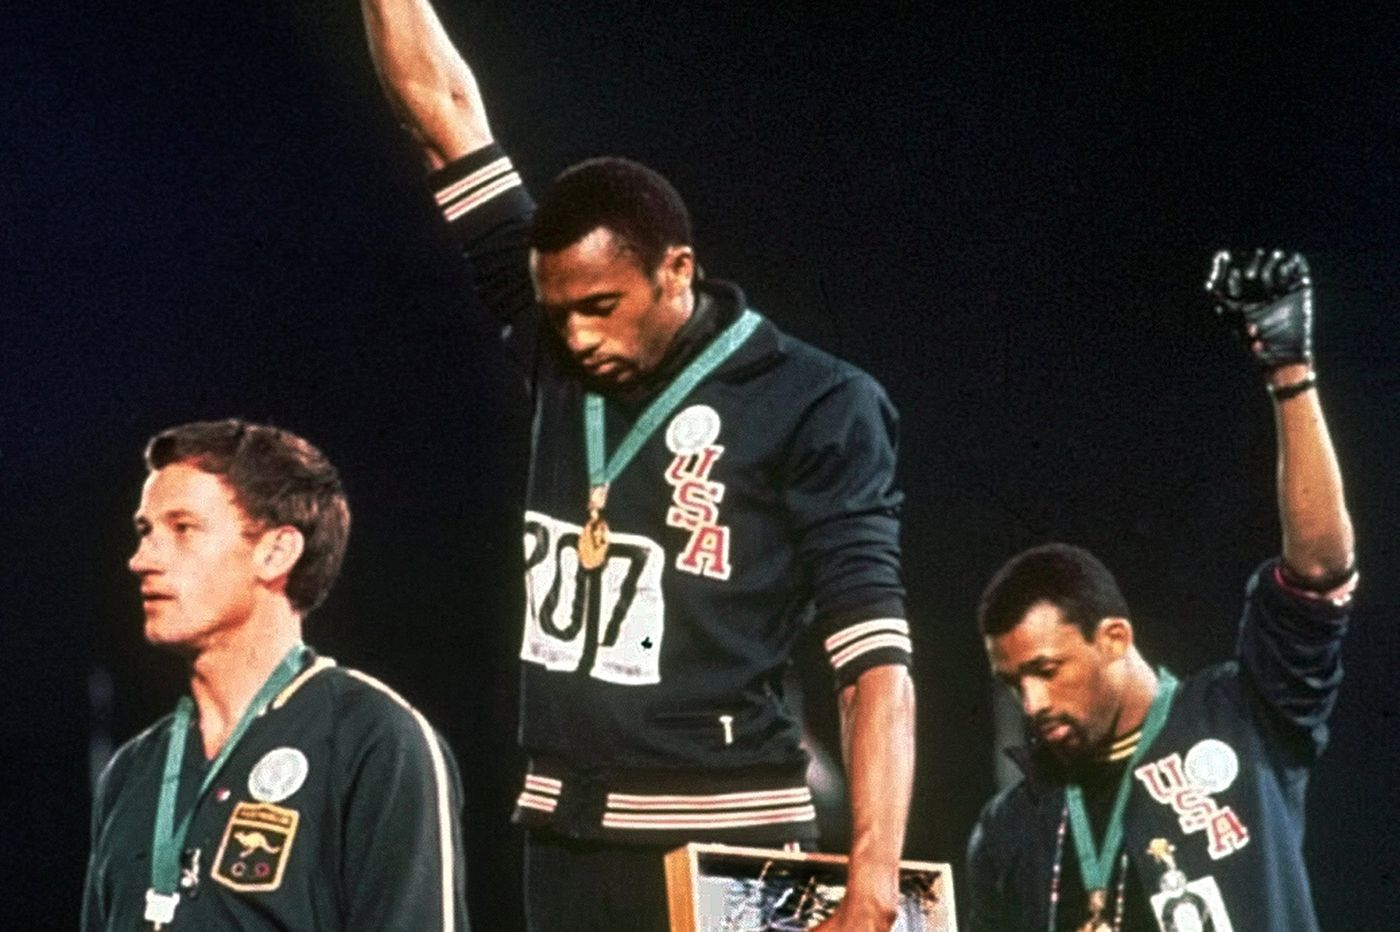 A white Australian backed the cause dramatized by black American Olympic stars Tommie Smith and John Carlos